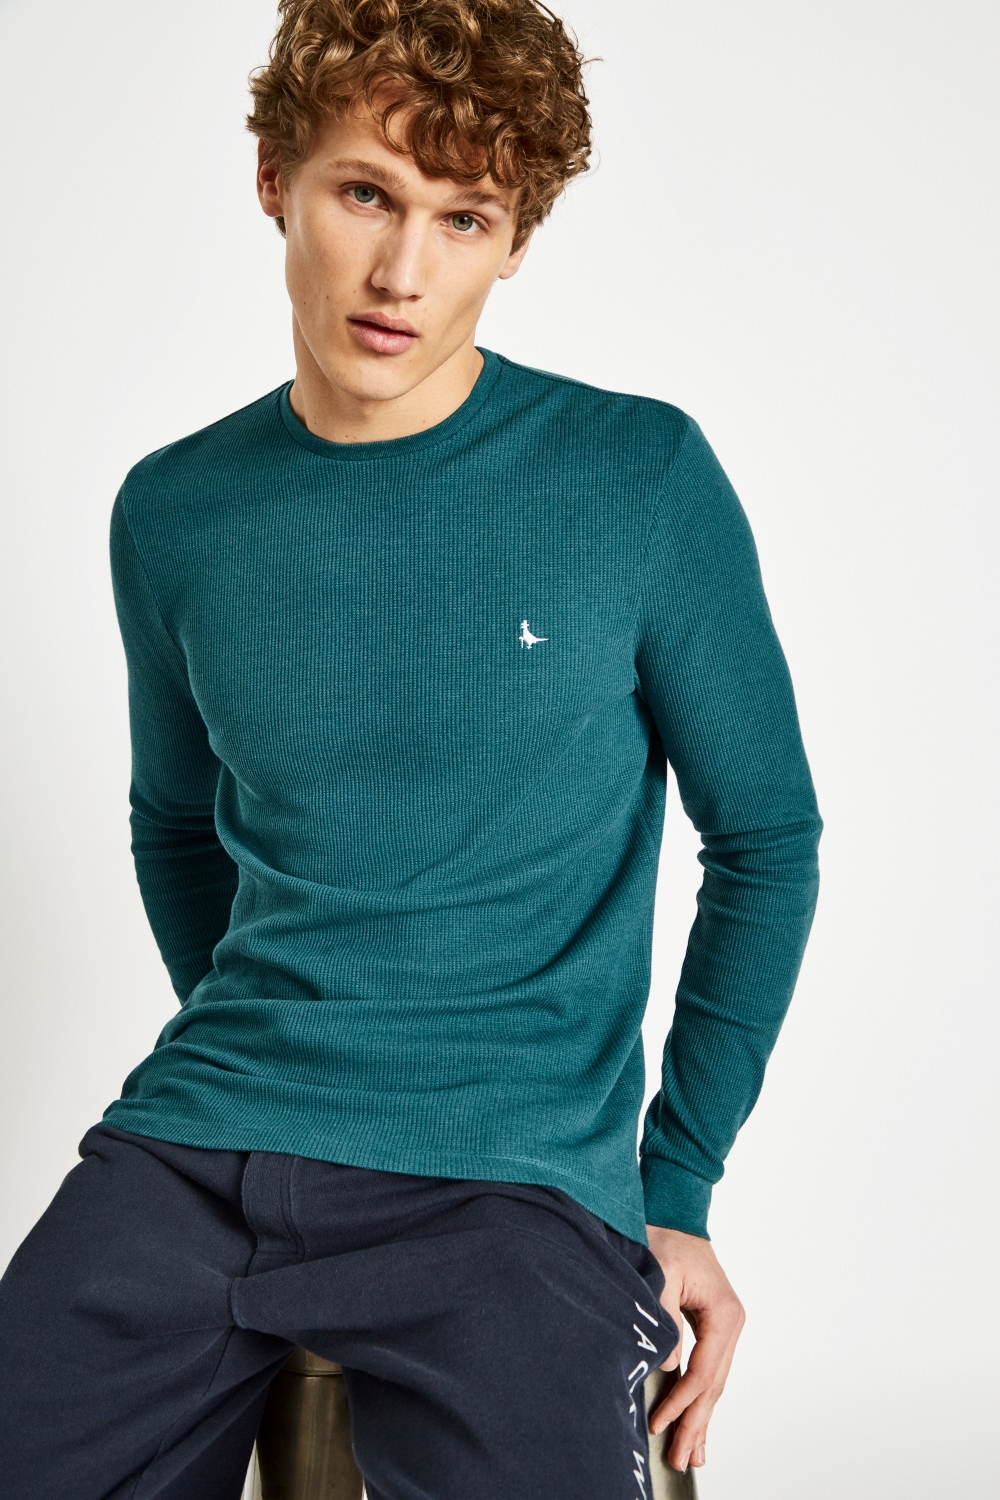 Jack Wills Teal FROGWELL LONG SLEEVE T-SHIRT